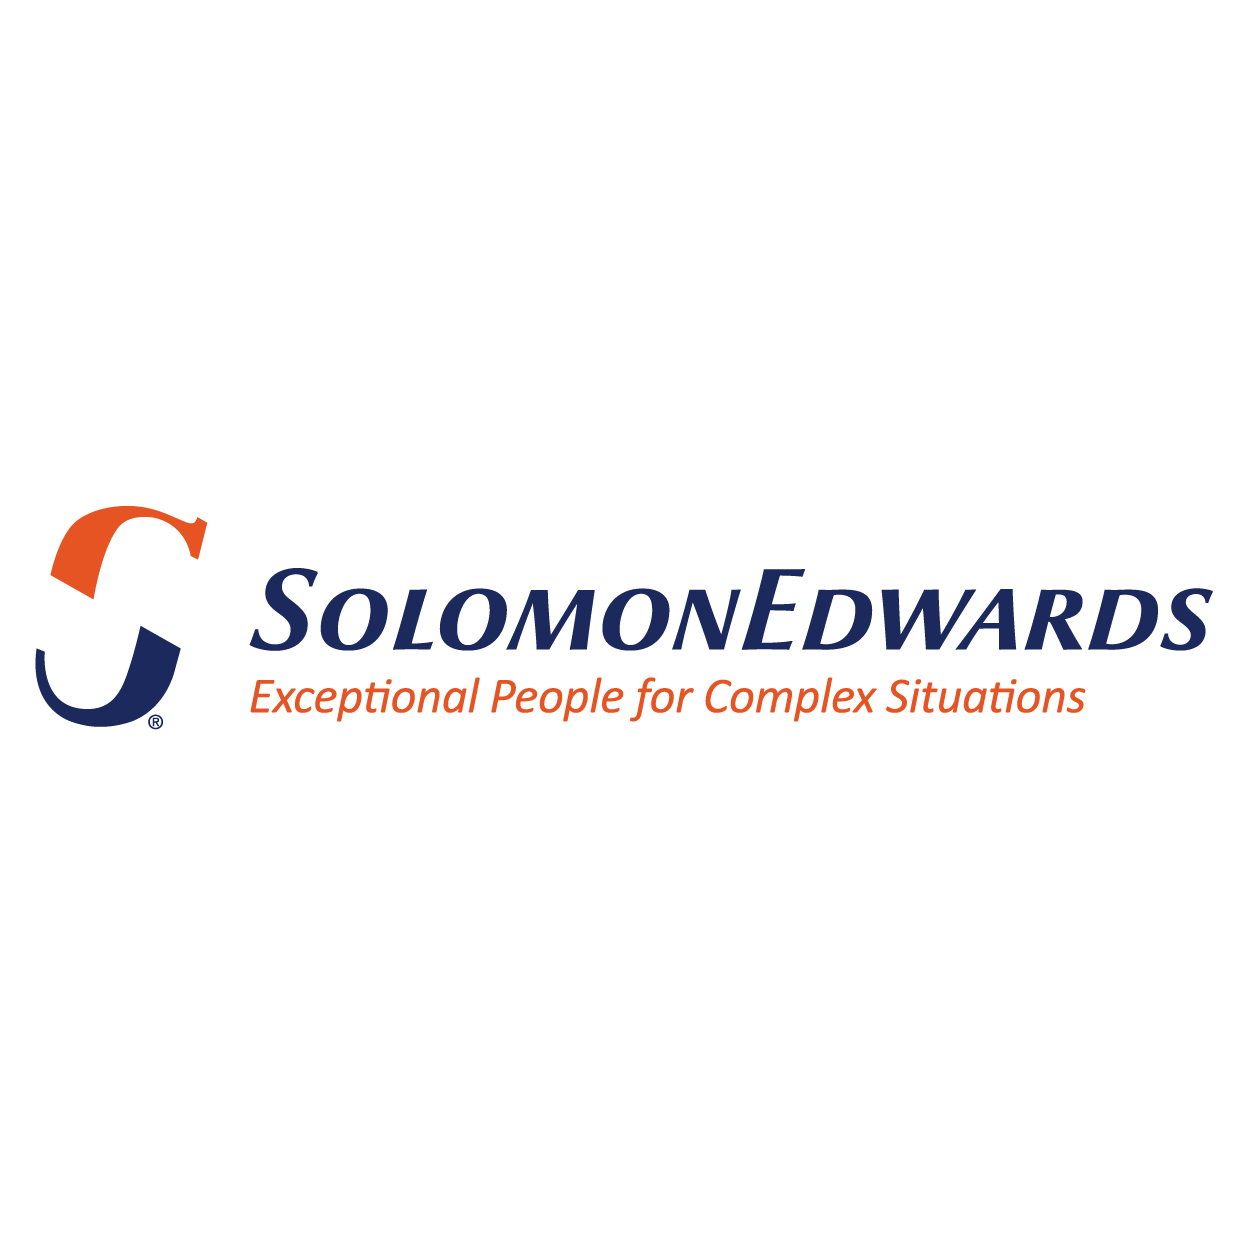 Solomon Edwards